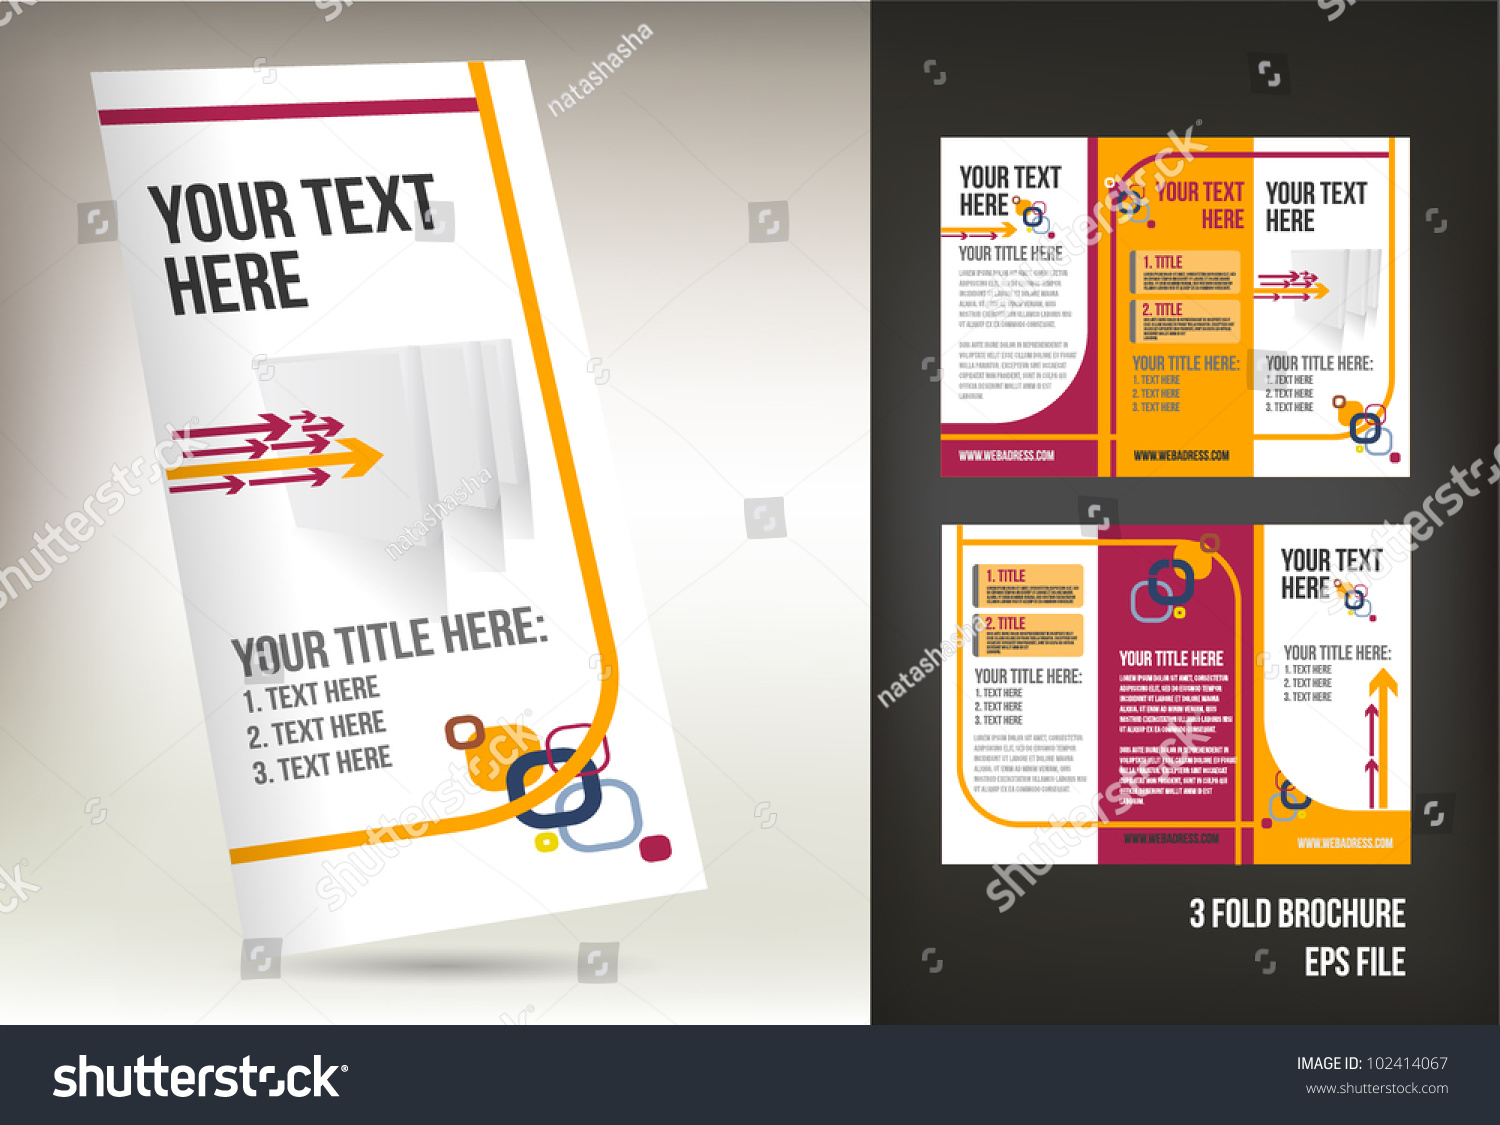 Colorful three fold brochure template stock vector for Colorful brochure templates